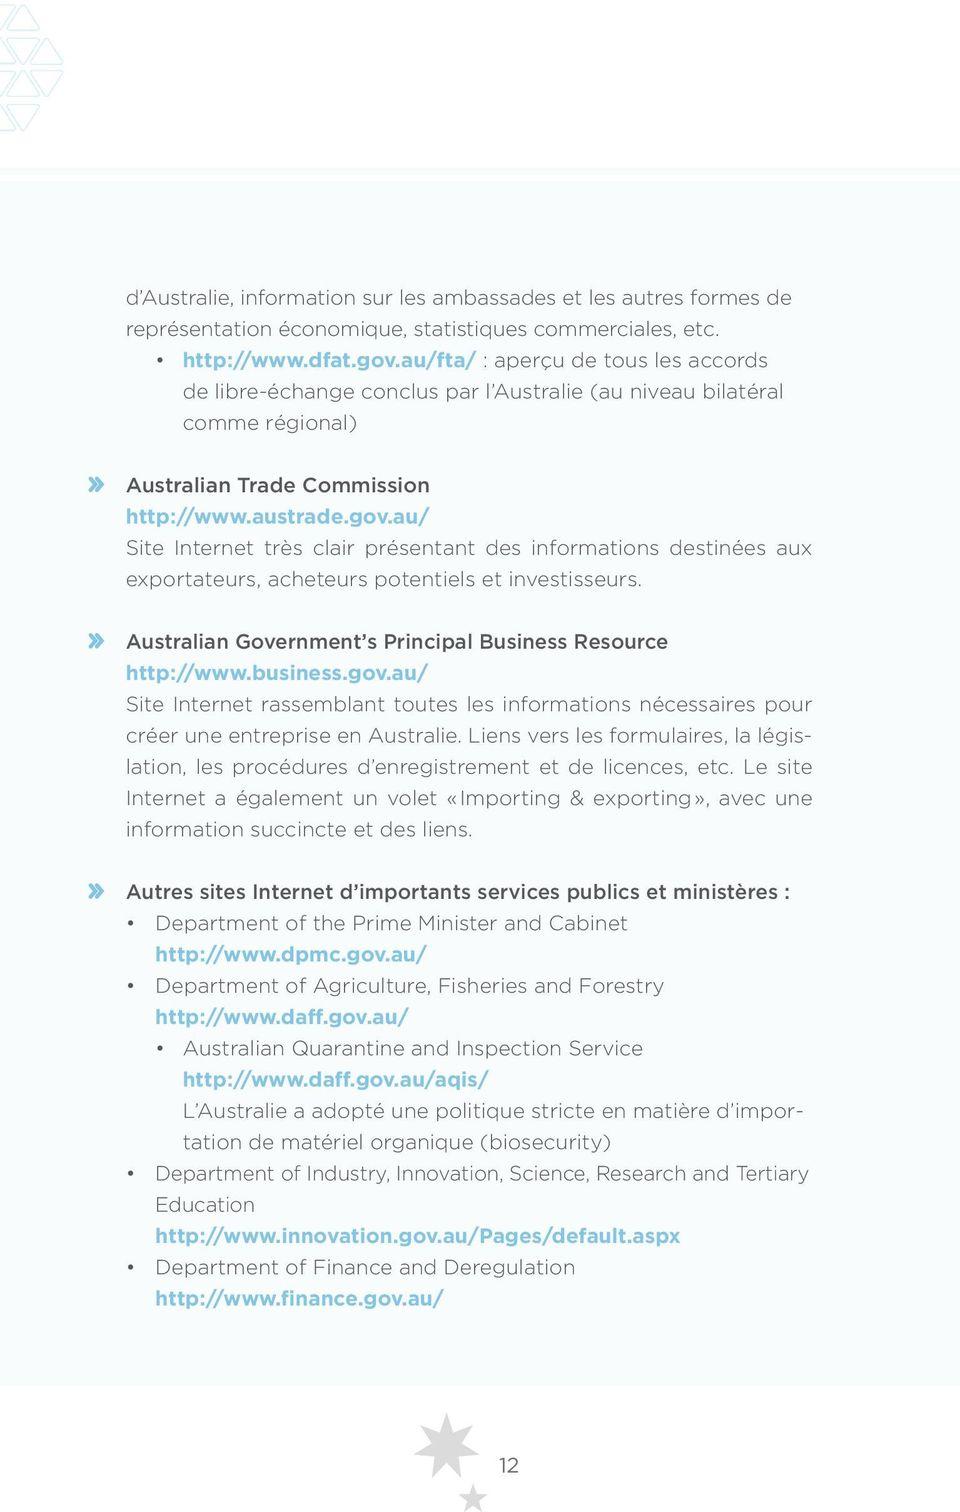 au/ Site Internet très clair présentant des informations destinées aux exportateurs, acheteurs potentiels et investisseurs. Australian Government s Principal Business Resource http://www.business.gov.